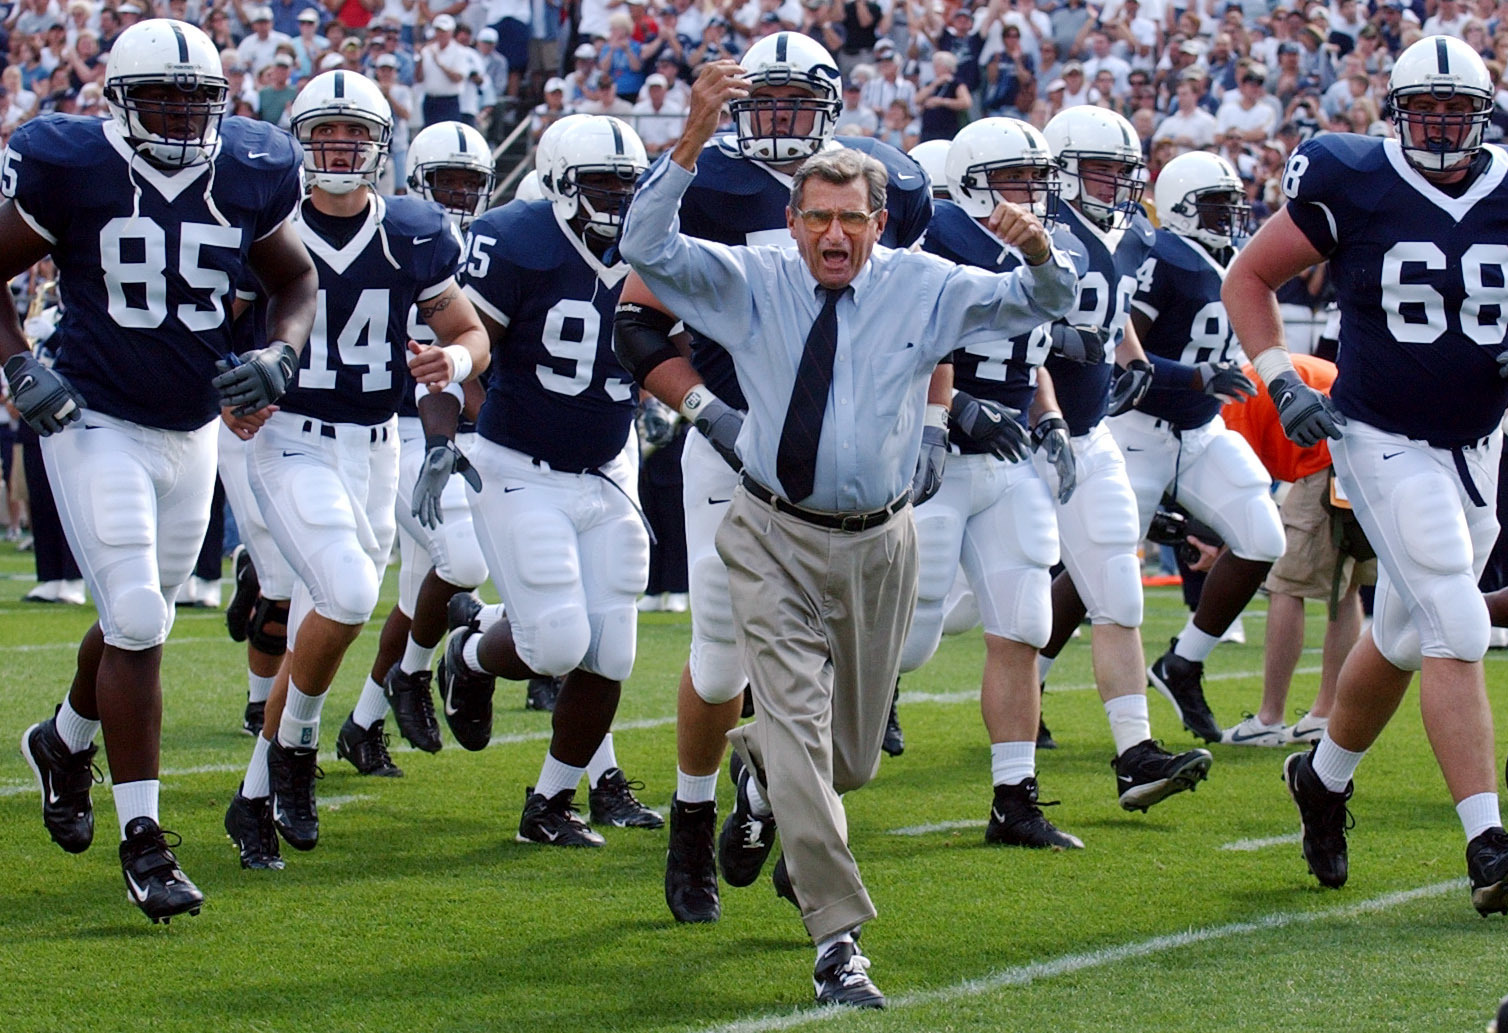 FILE - In this Sept. 4, 2004 file photo, Penn State coach Joe Paterno leads his team onto the field before an NCAA college football game against Akron in State College, Pa. As Penn State's athletic department finalizes details for how to honor the 50th an